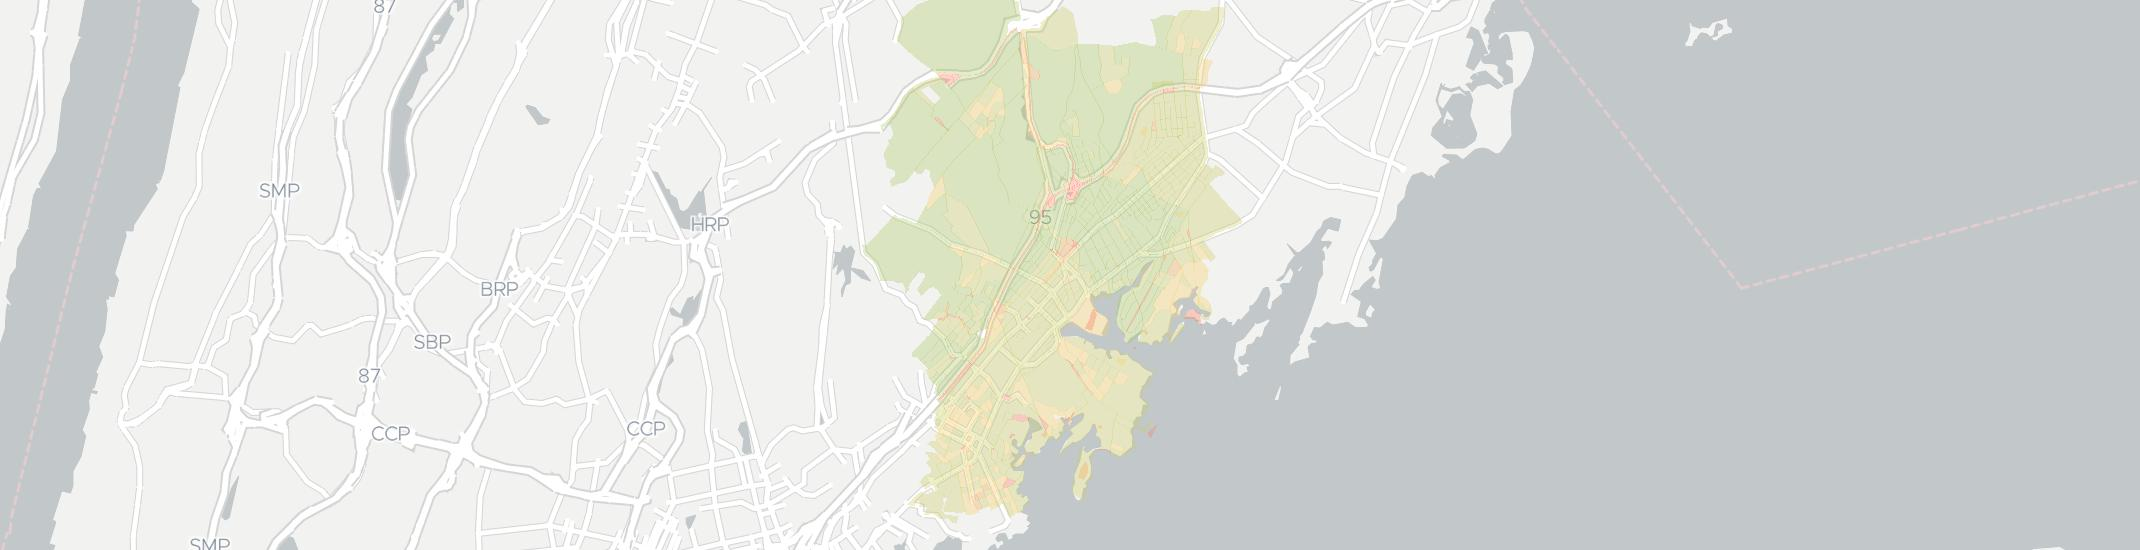 Mamaroneck Internet Competition Map. Click for interactive map.